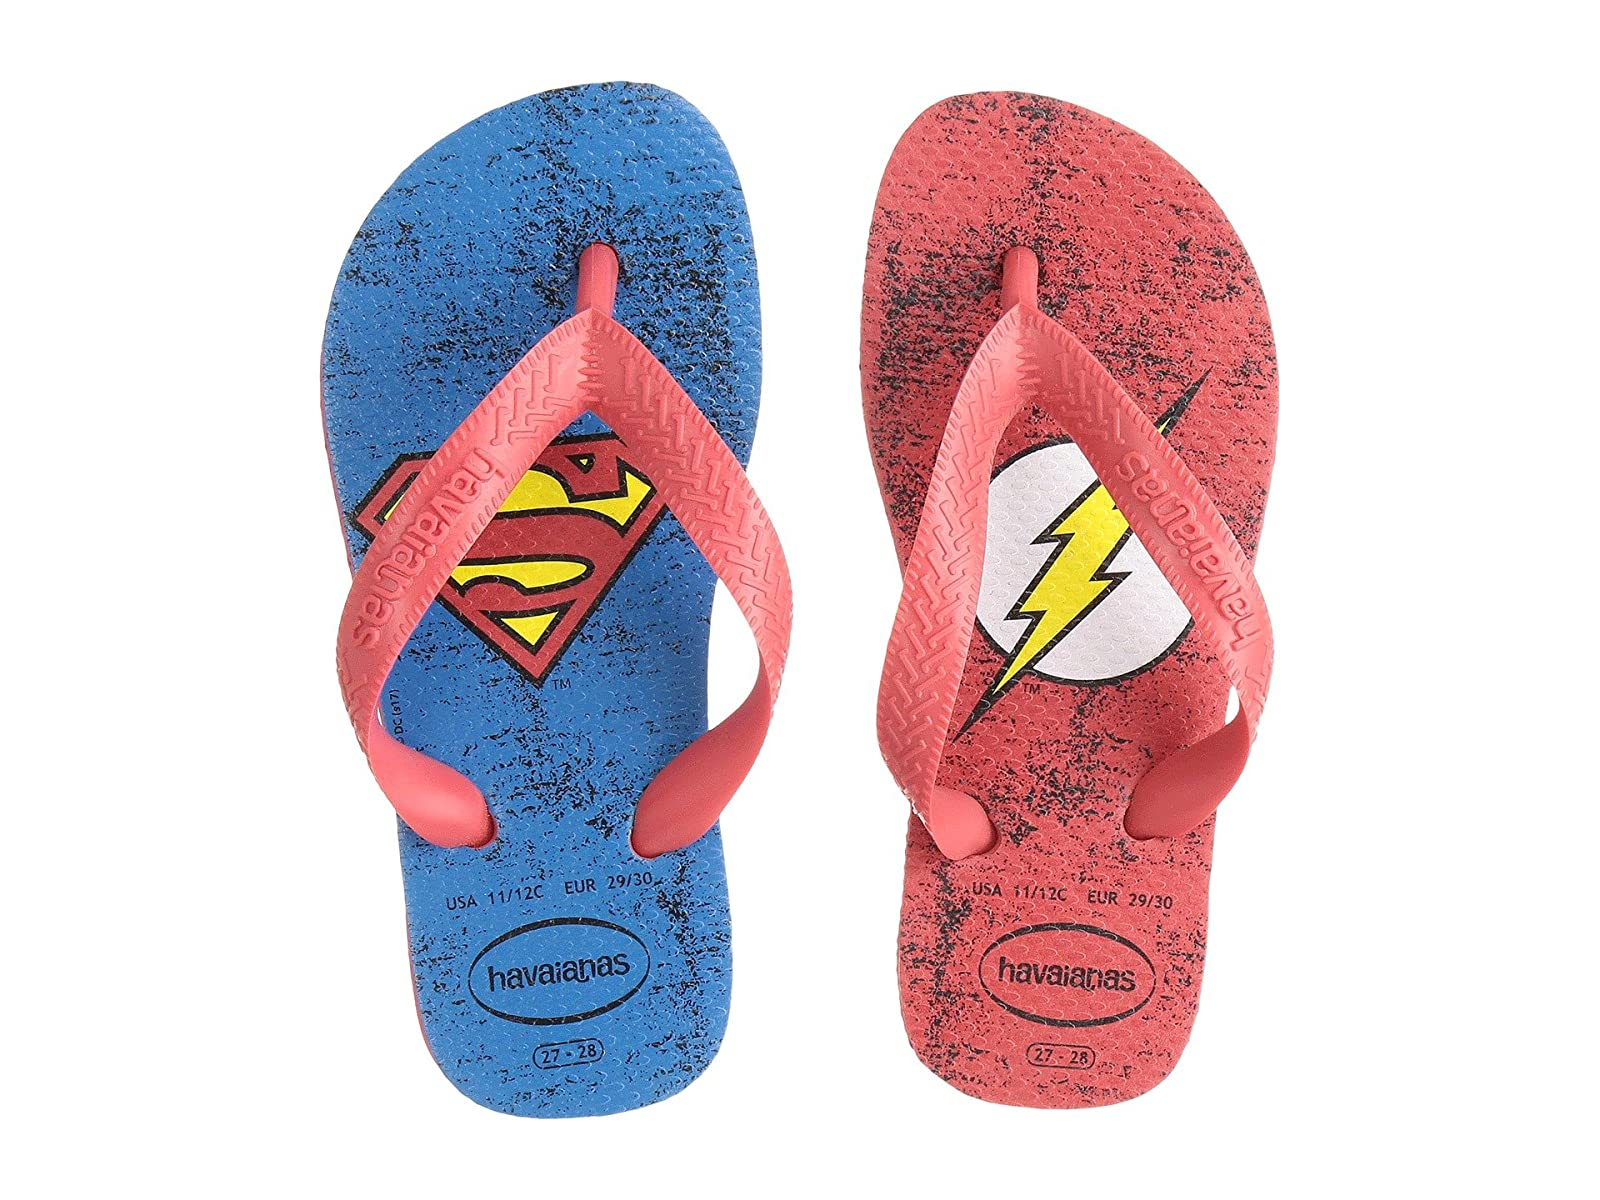 Havaianas Kids Heroes DC Flip-Flop (Toddler/Little Kid/Big Kid)Atmospheric grades have affordable shoes